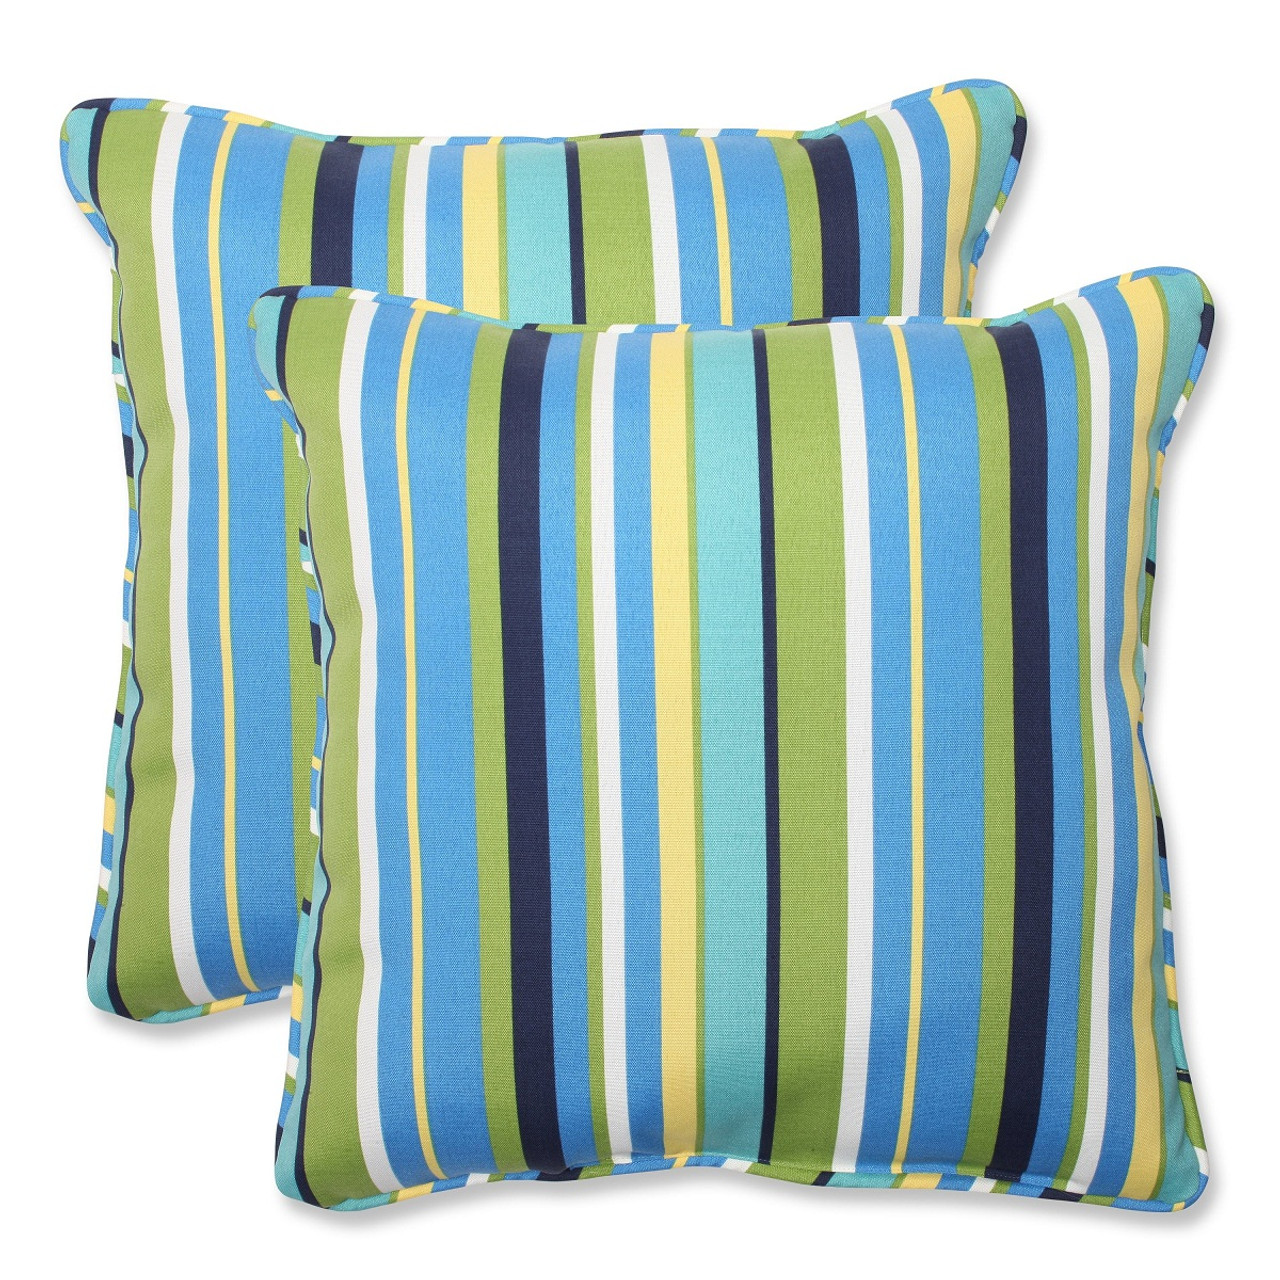 Set Of 2 Strisce Luminose Blue Green Yellow Striped Outdoor Corded Square Throw Pillows 18 5 Christmas Central